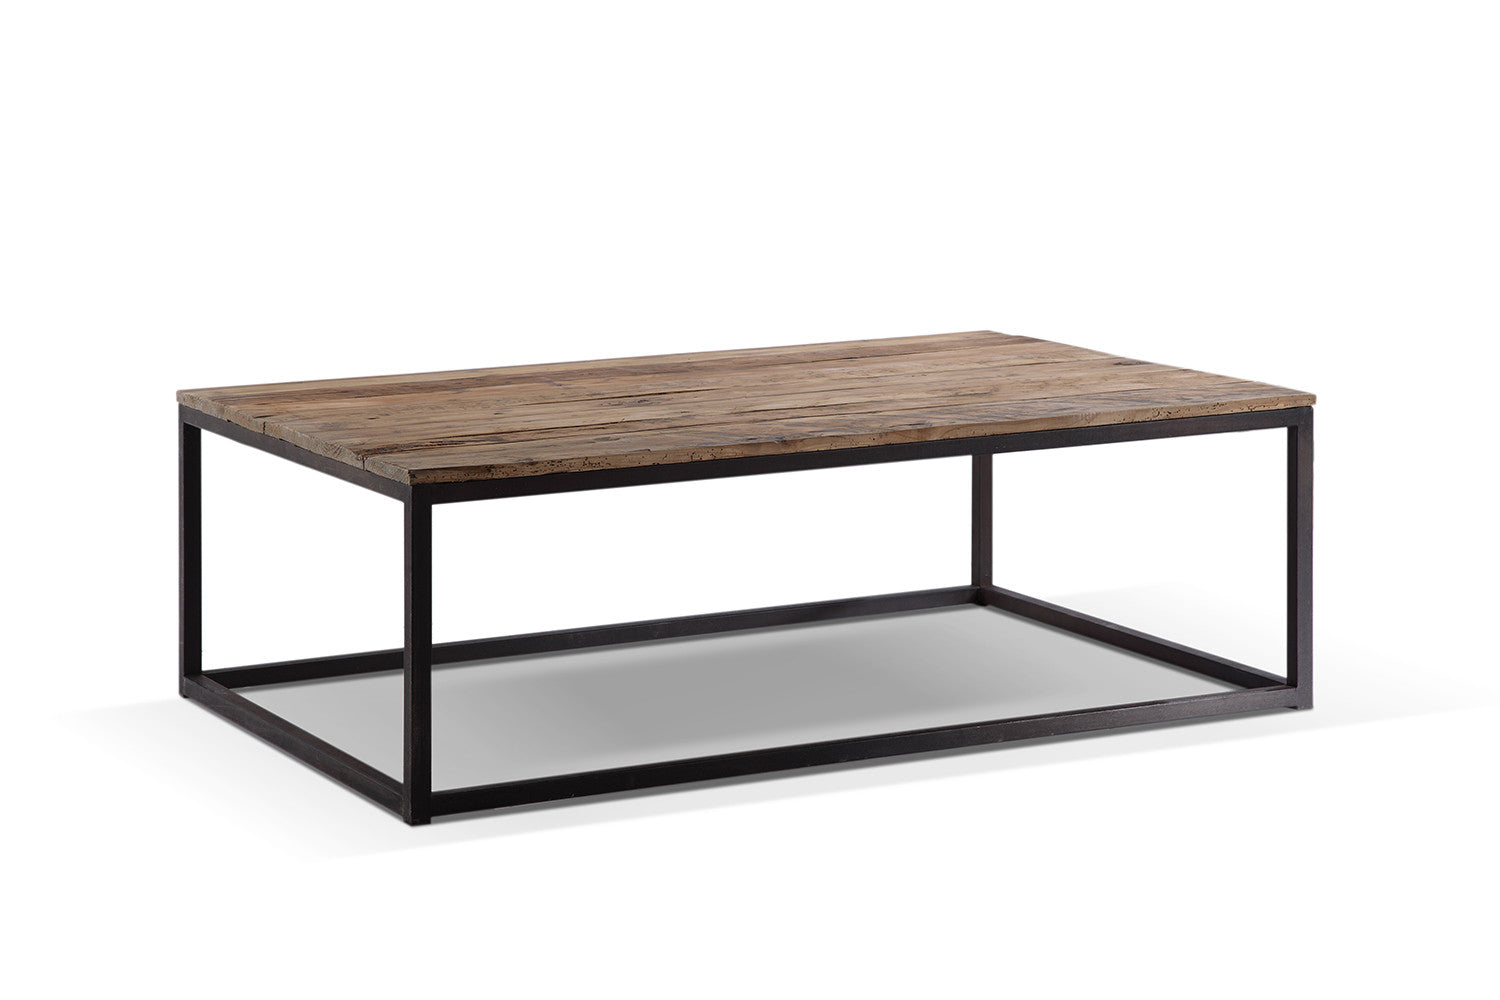 Table Basse Industrielle en Métal et Bois TB02 Rose& Moore # Table Basse Industrielle Bois